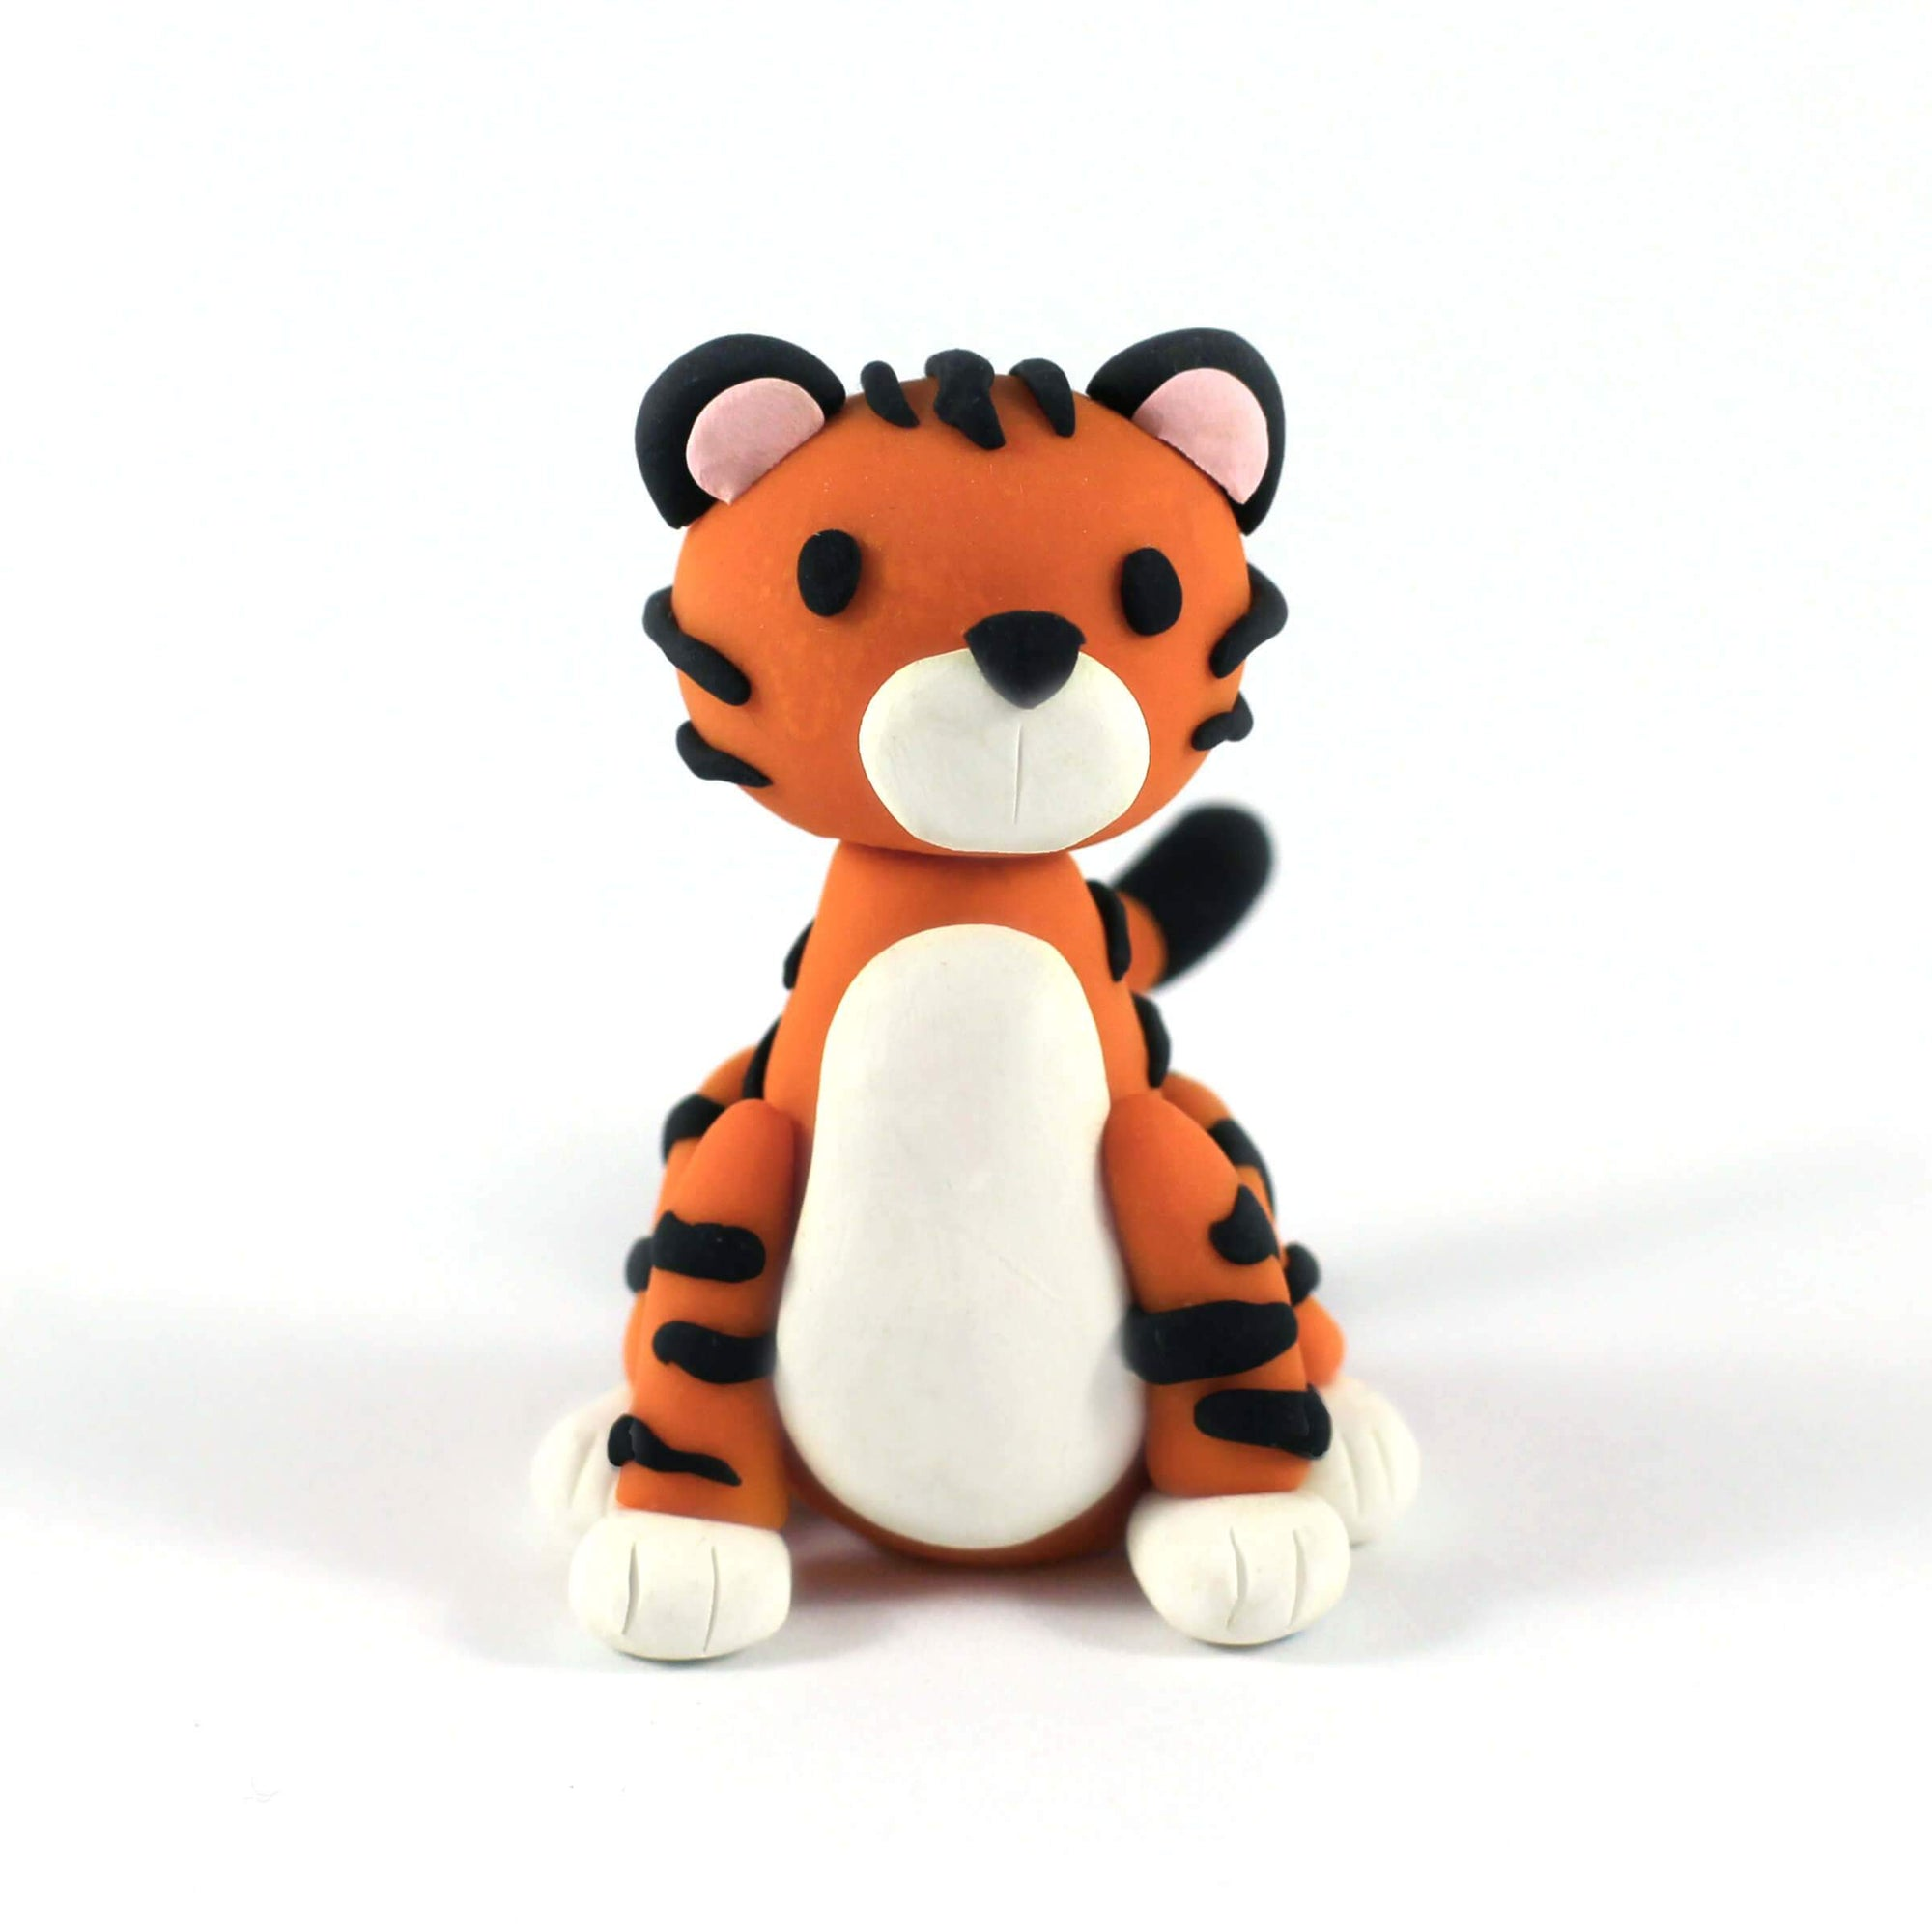 Sculpt a Tiger | $14.99